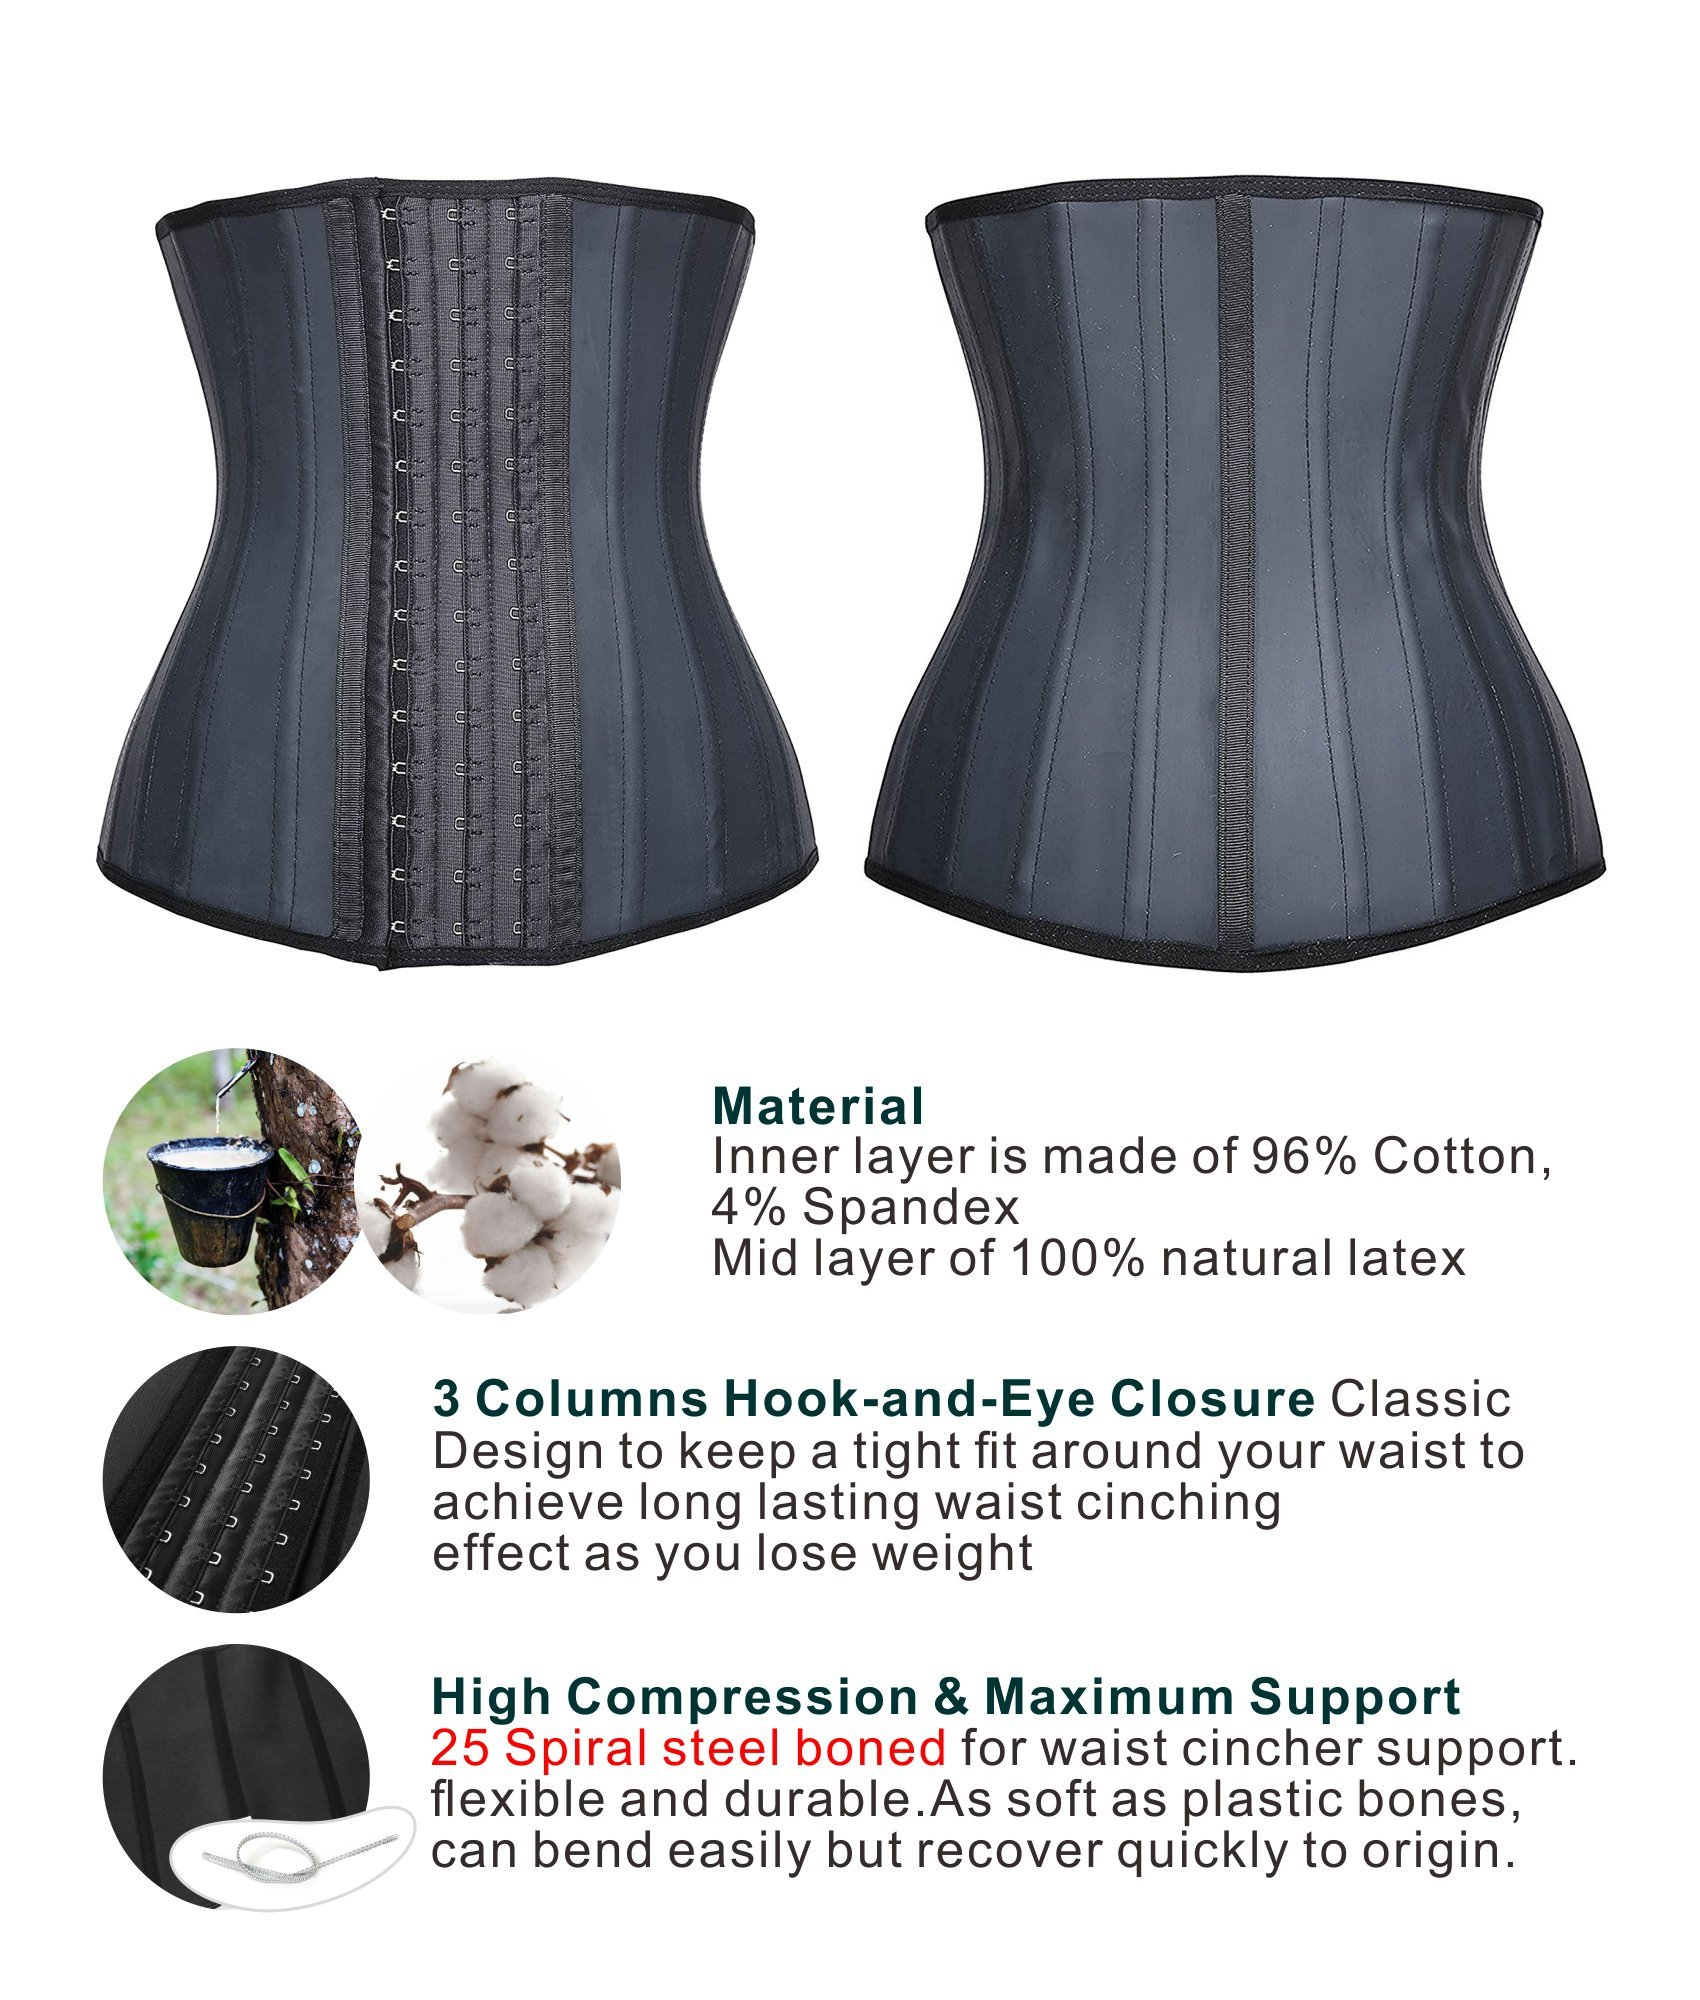 336ab62729d SHAPERX Camellias Women 25 Steel Boned Latex Waist Trainer Corset for  Weight Loss Waist Cincher Body Shaper Slimmer Tummy Control Shapewear Black  ...